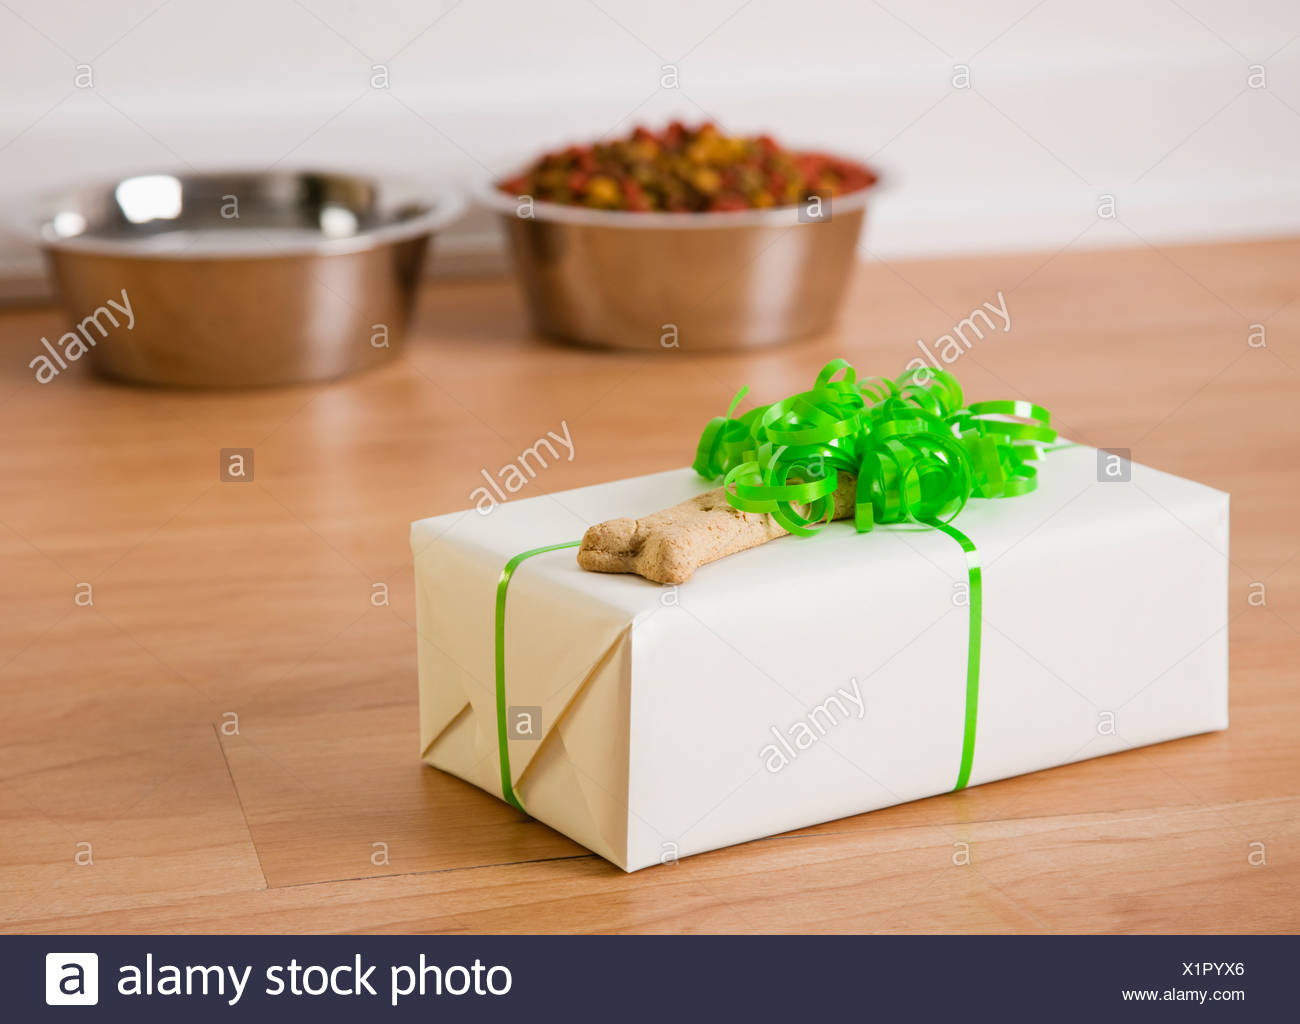 USA, Illinois, Metamora, Gift box with dog bone - Stock Image